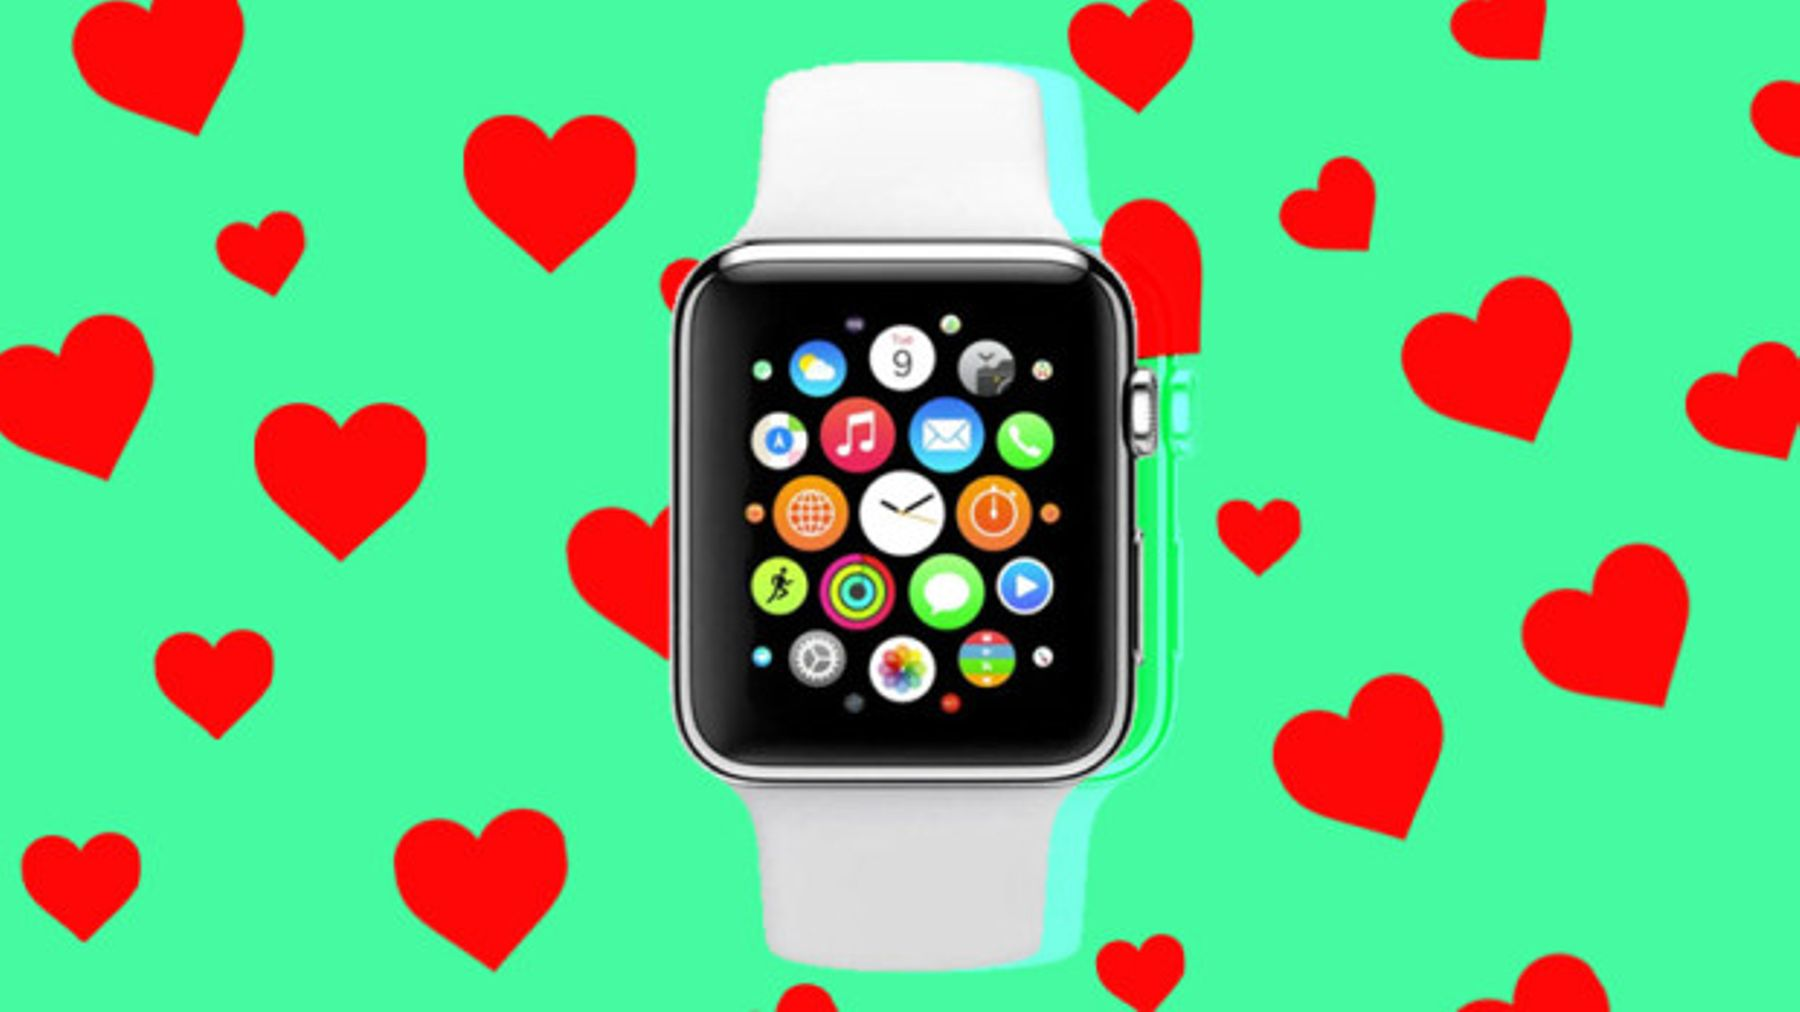 Hands-Free Tinder' Swipes Left Or Right Based On Your Heart Rate